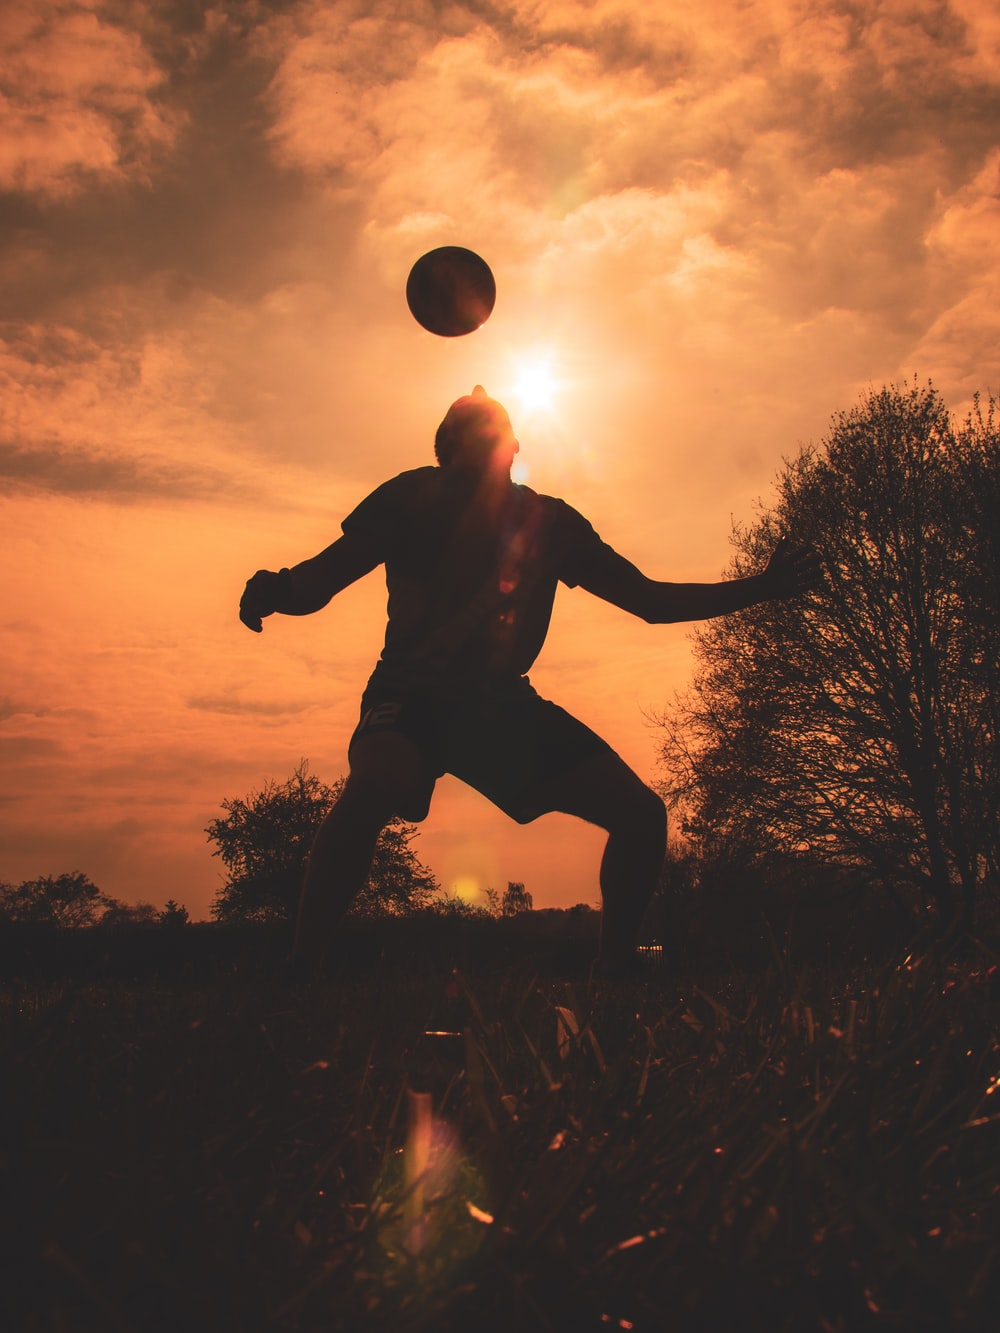 silhouette of man jumping on grass field during sunset